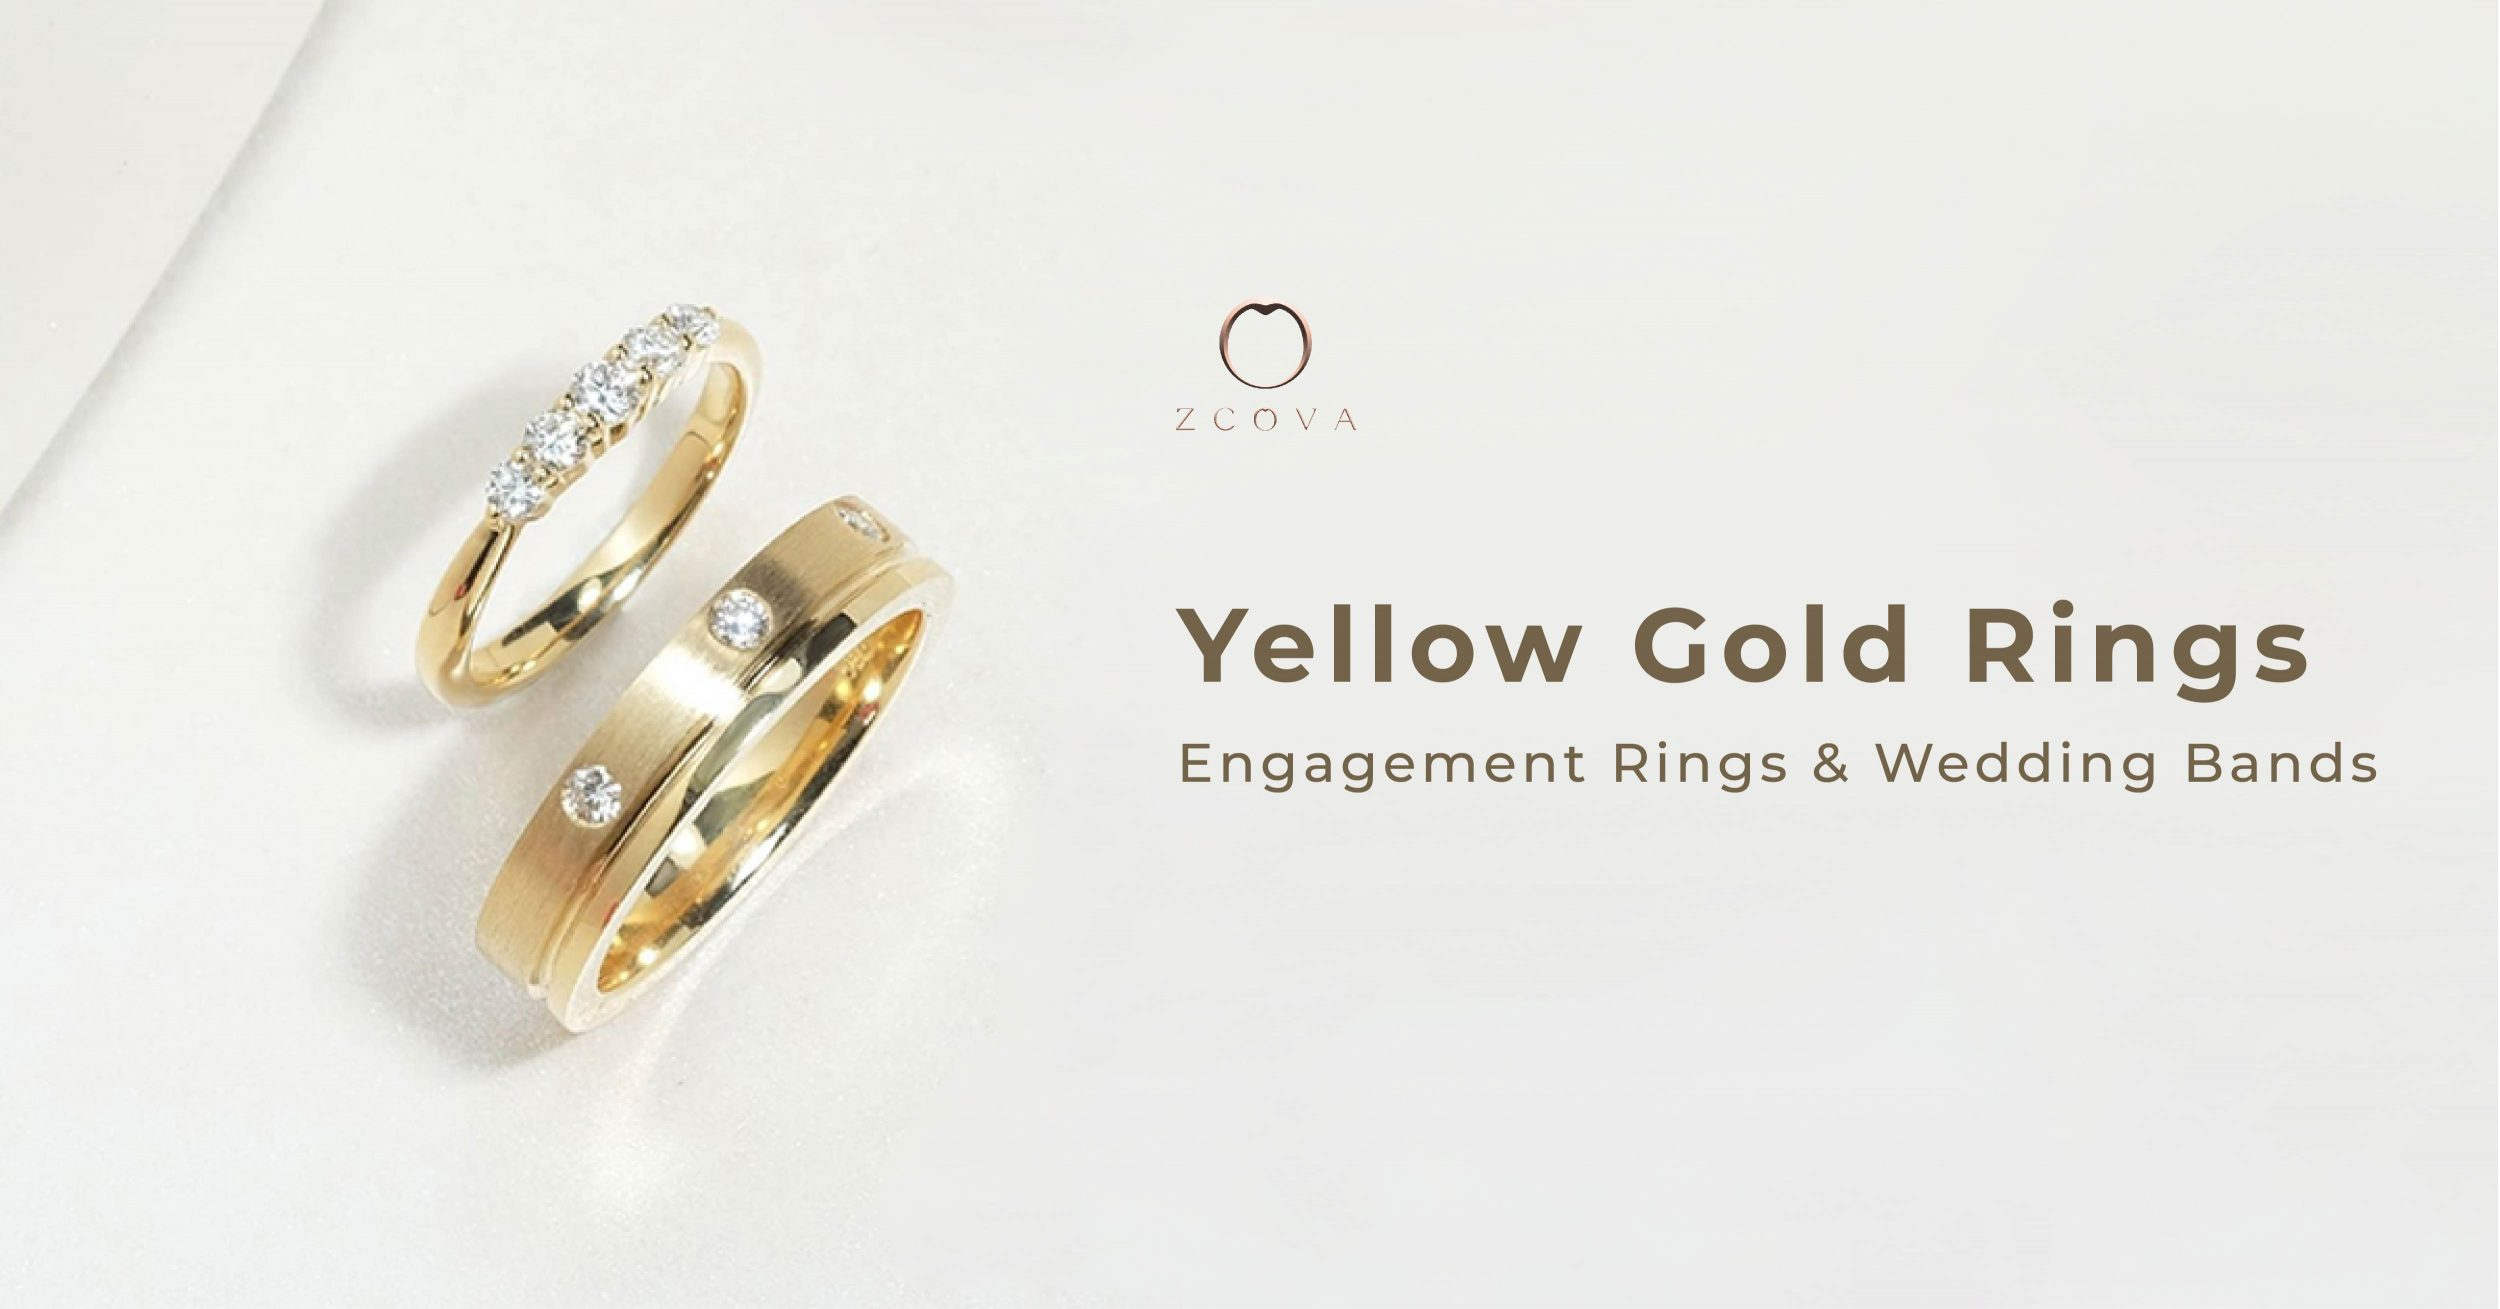 Yellow Gold Engagement Rings and Wedding Bands